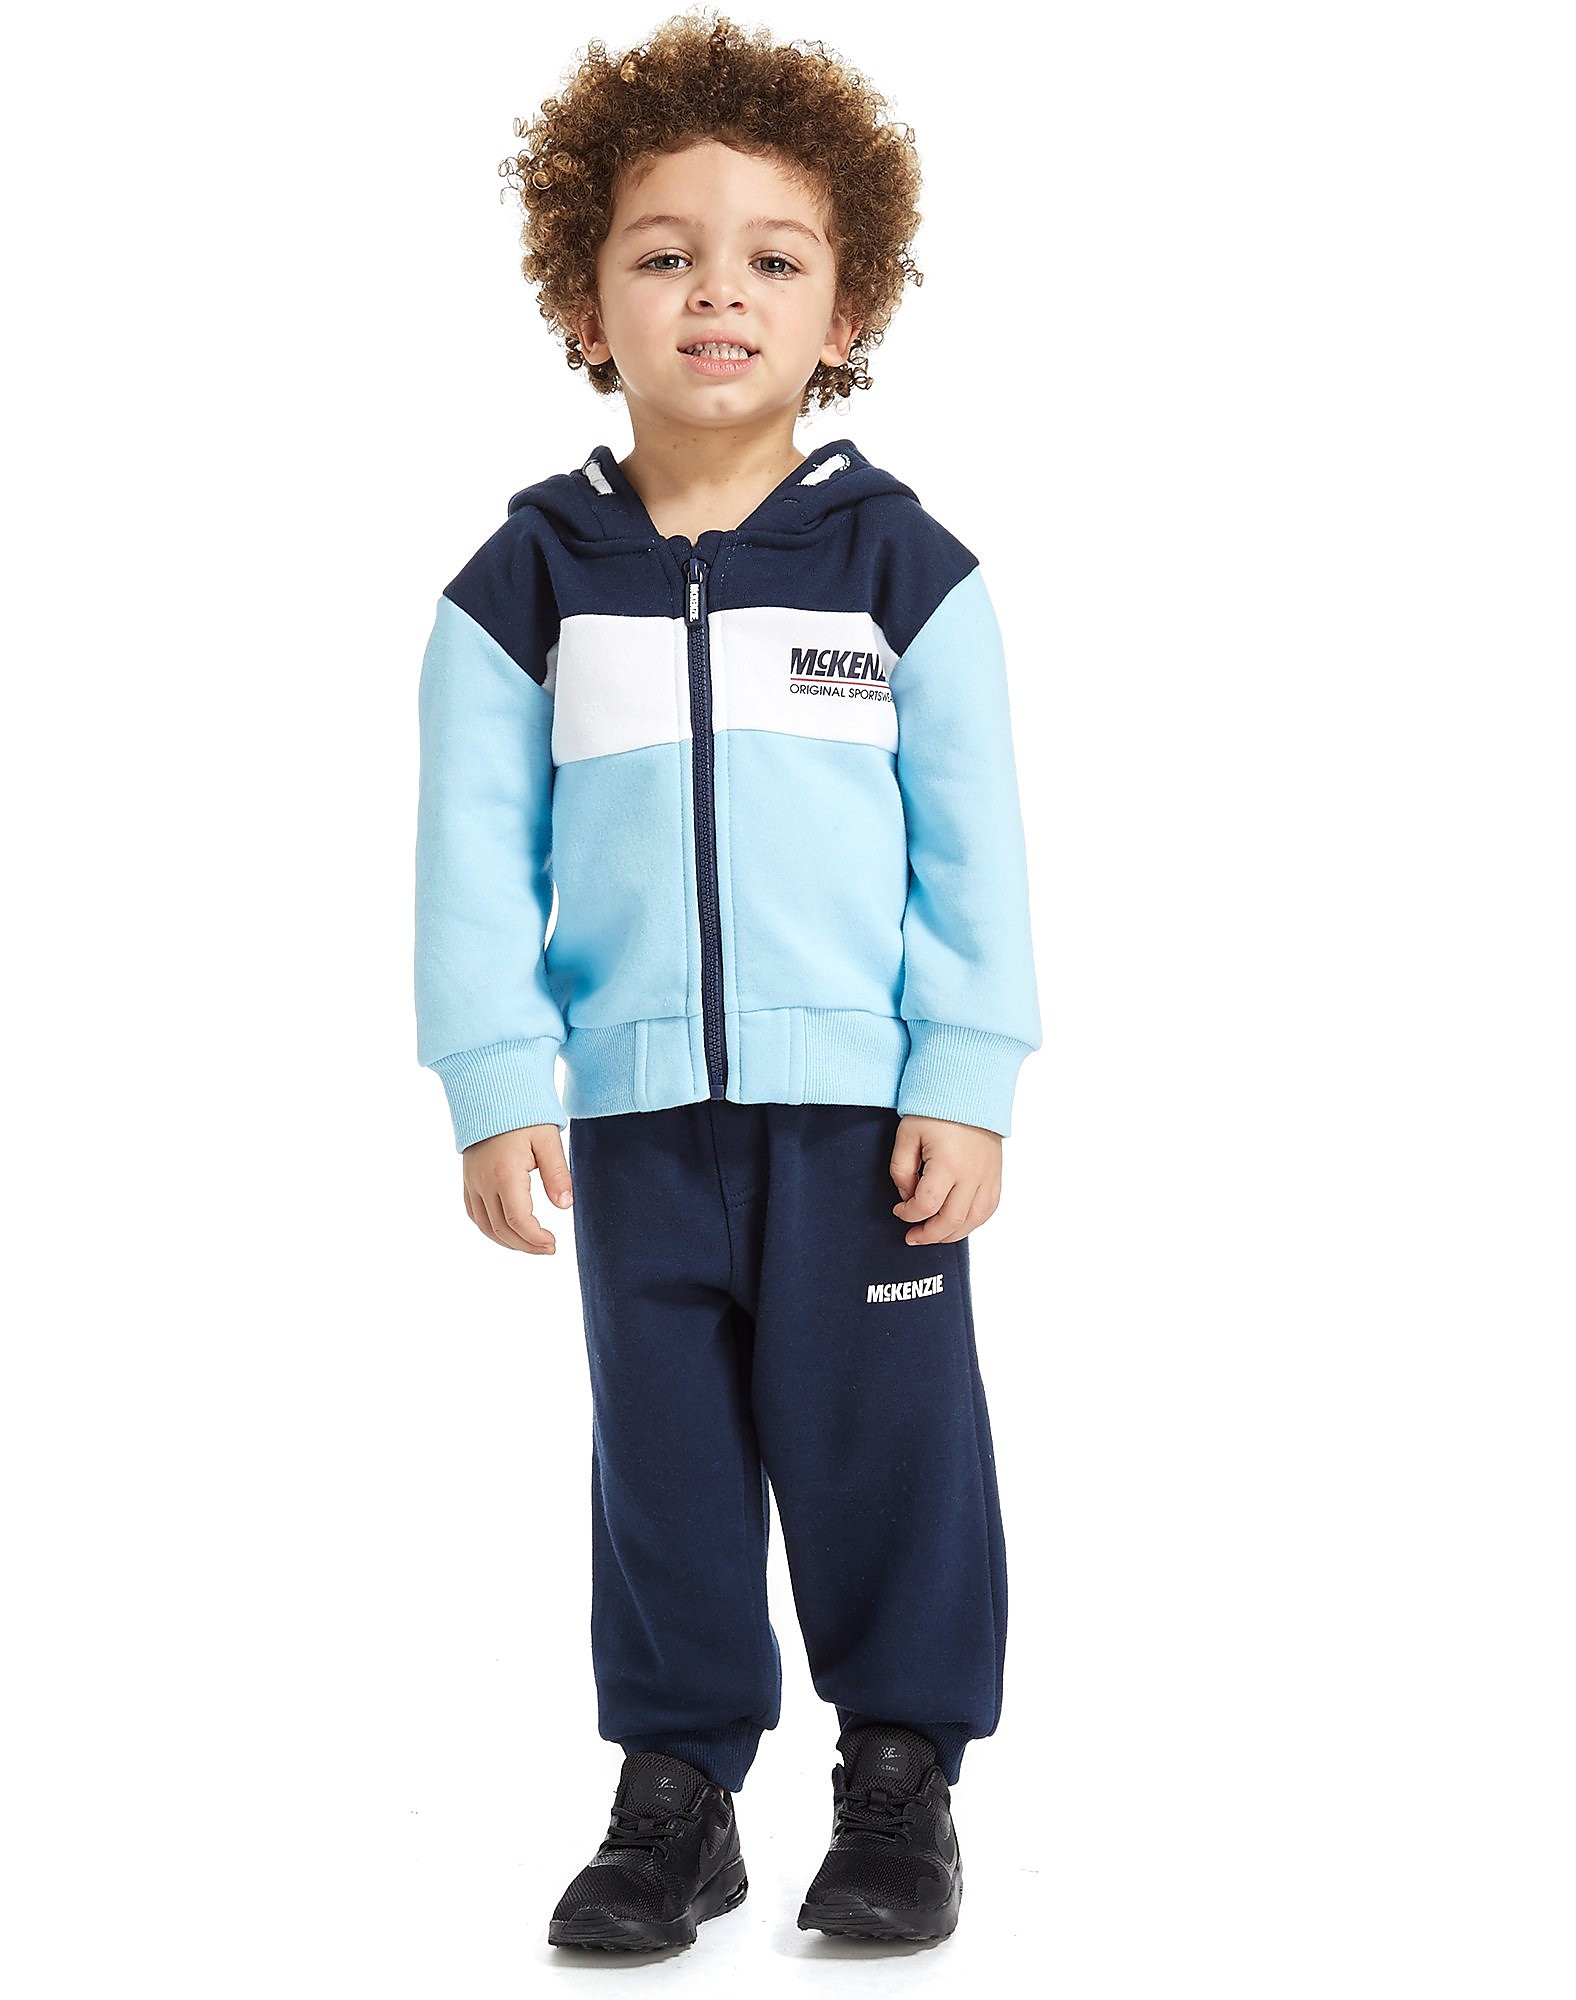 McKenzie Jessop Suit Infant